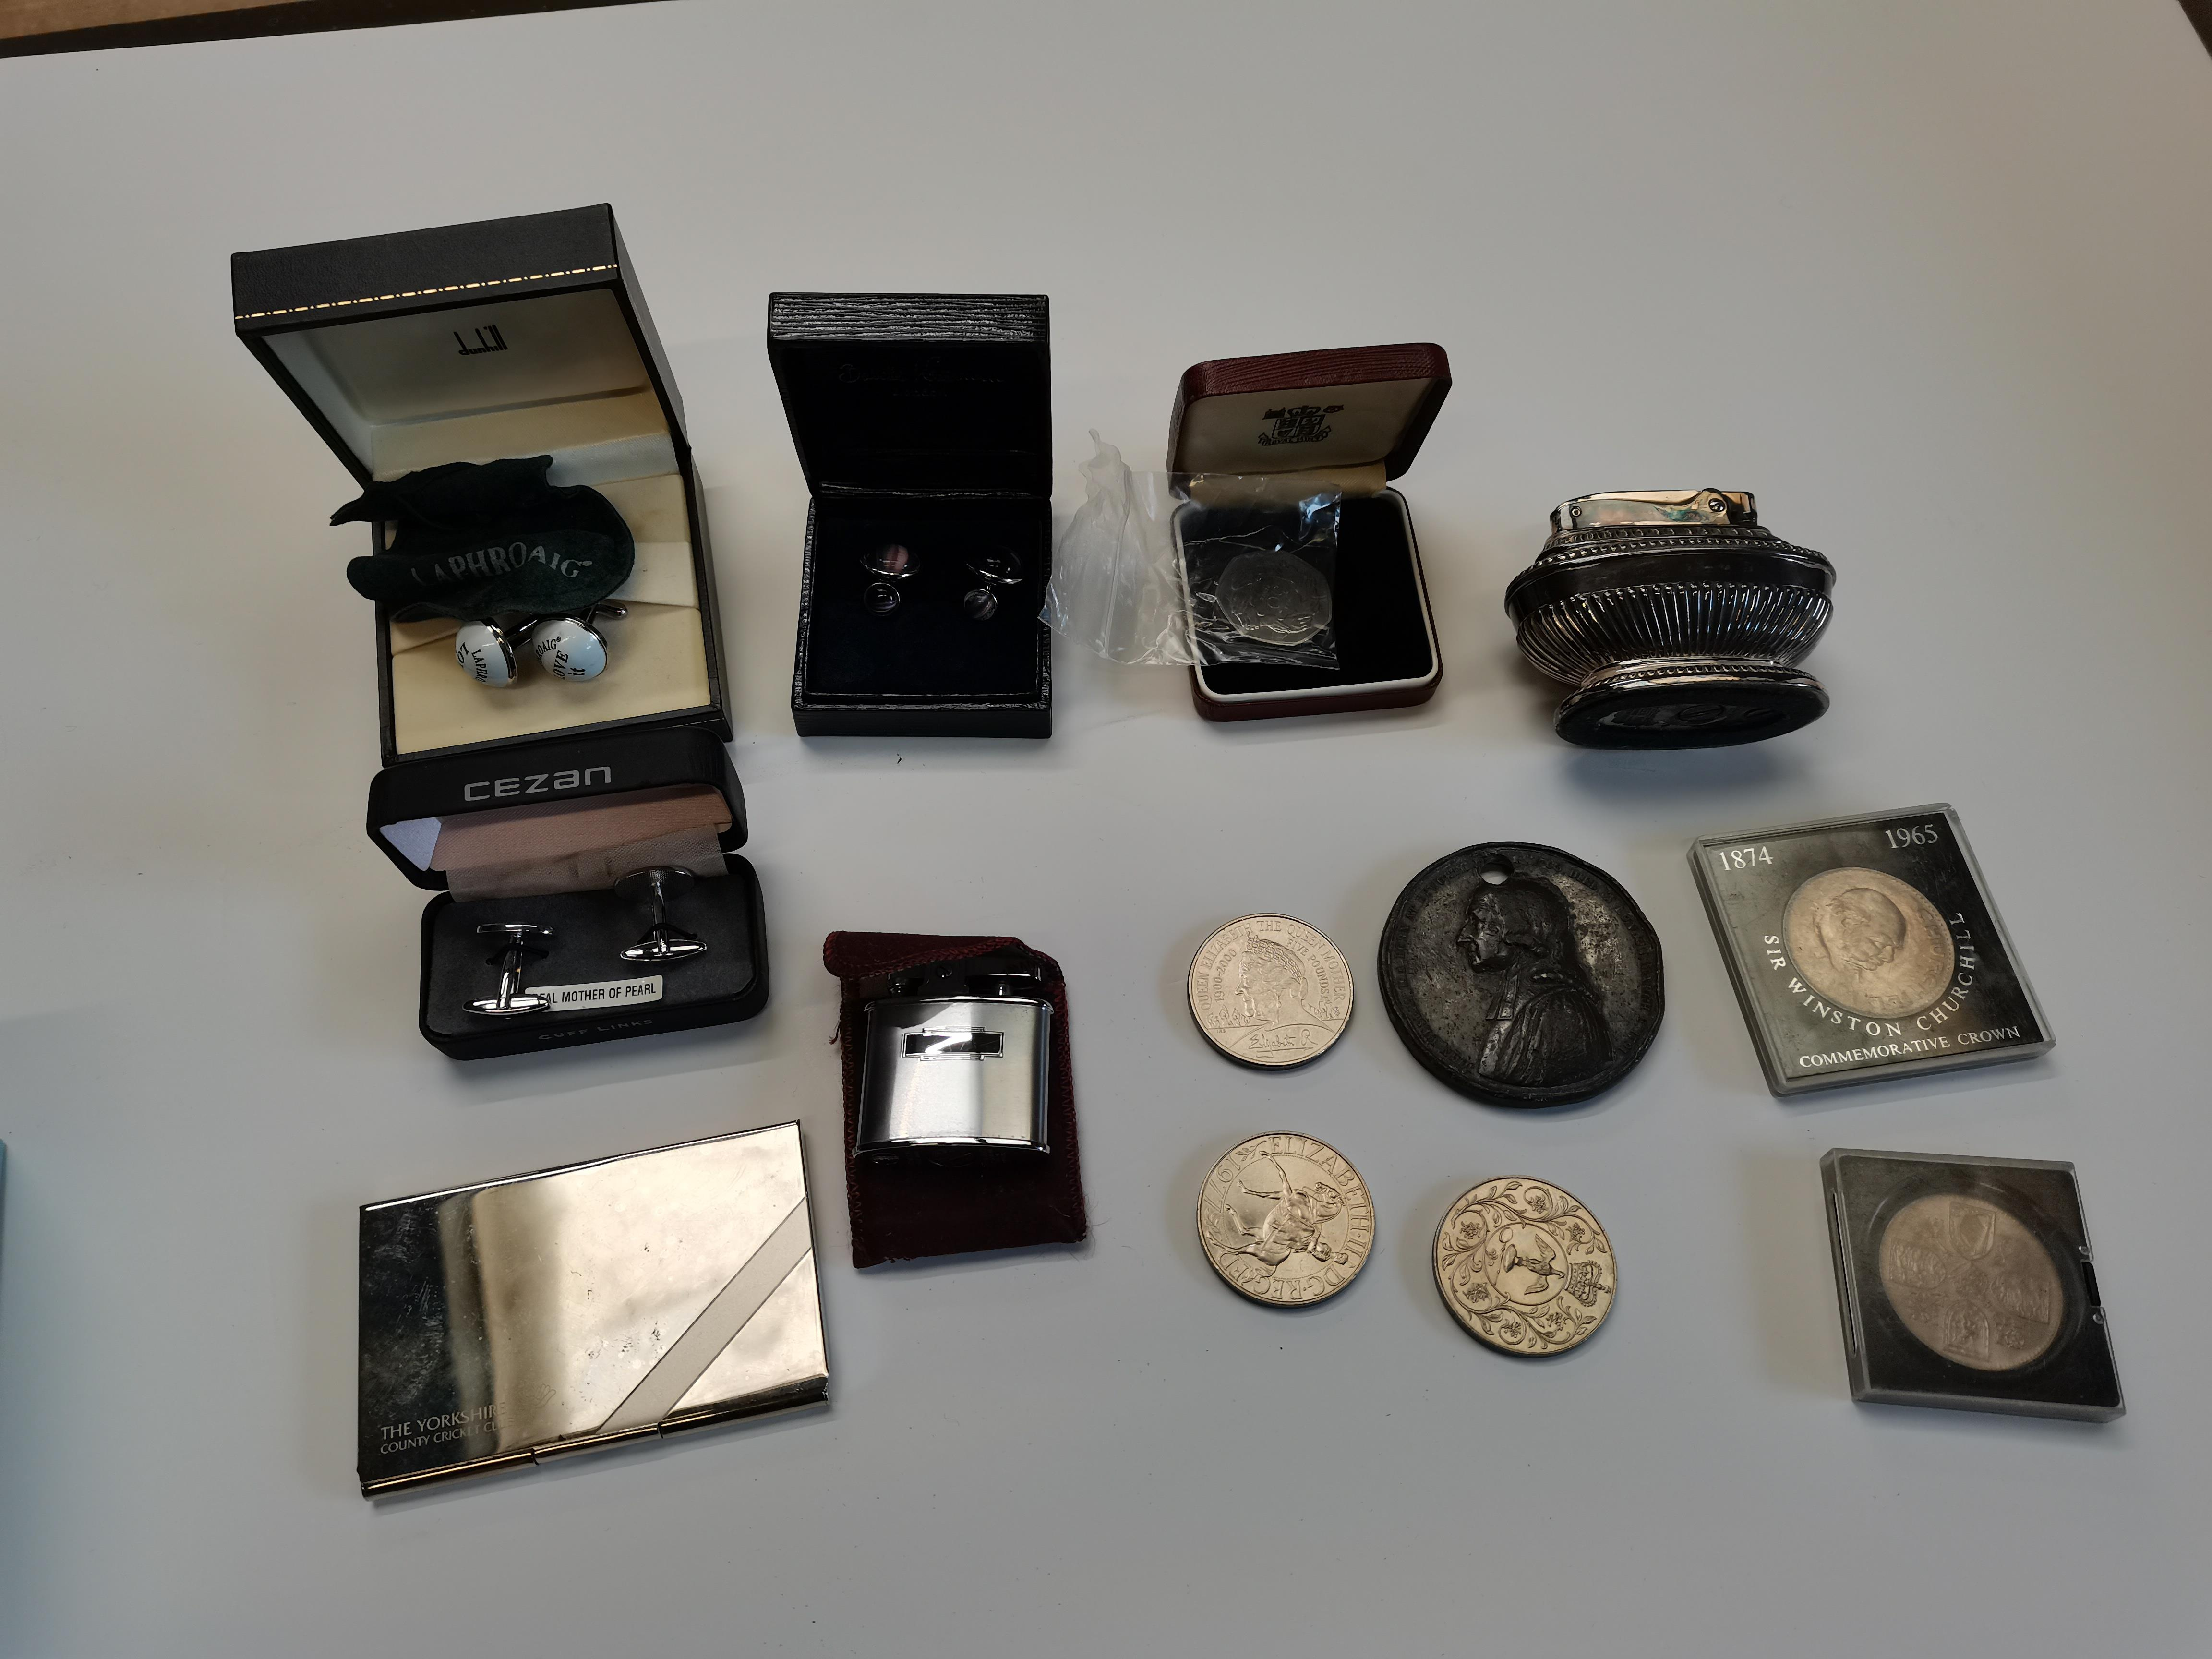 1839 Centenary of Wesleyan Methodism silver medal plus Ronson lighter, coins etc - Image 8 of 8